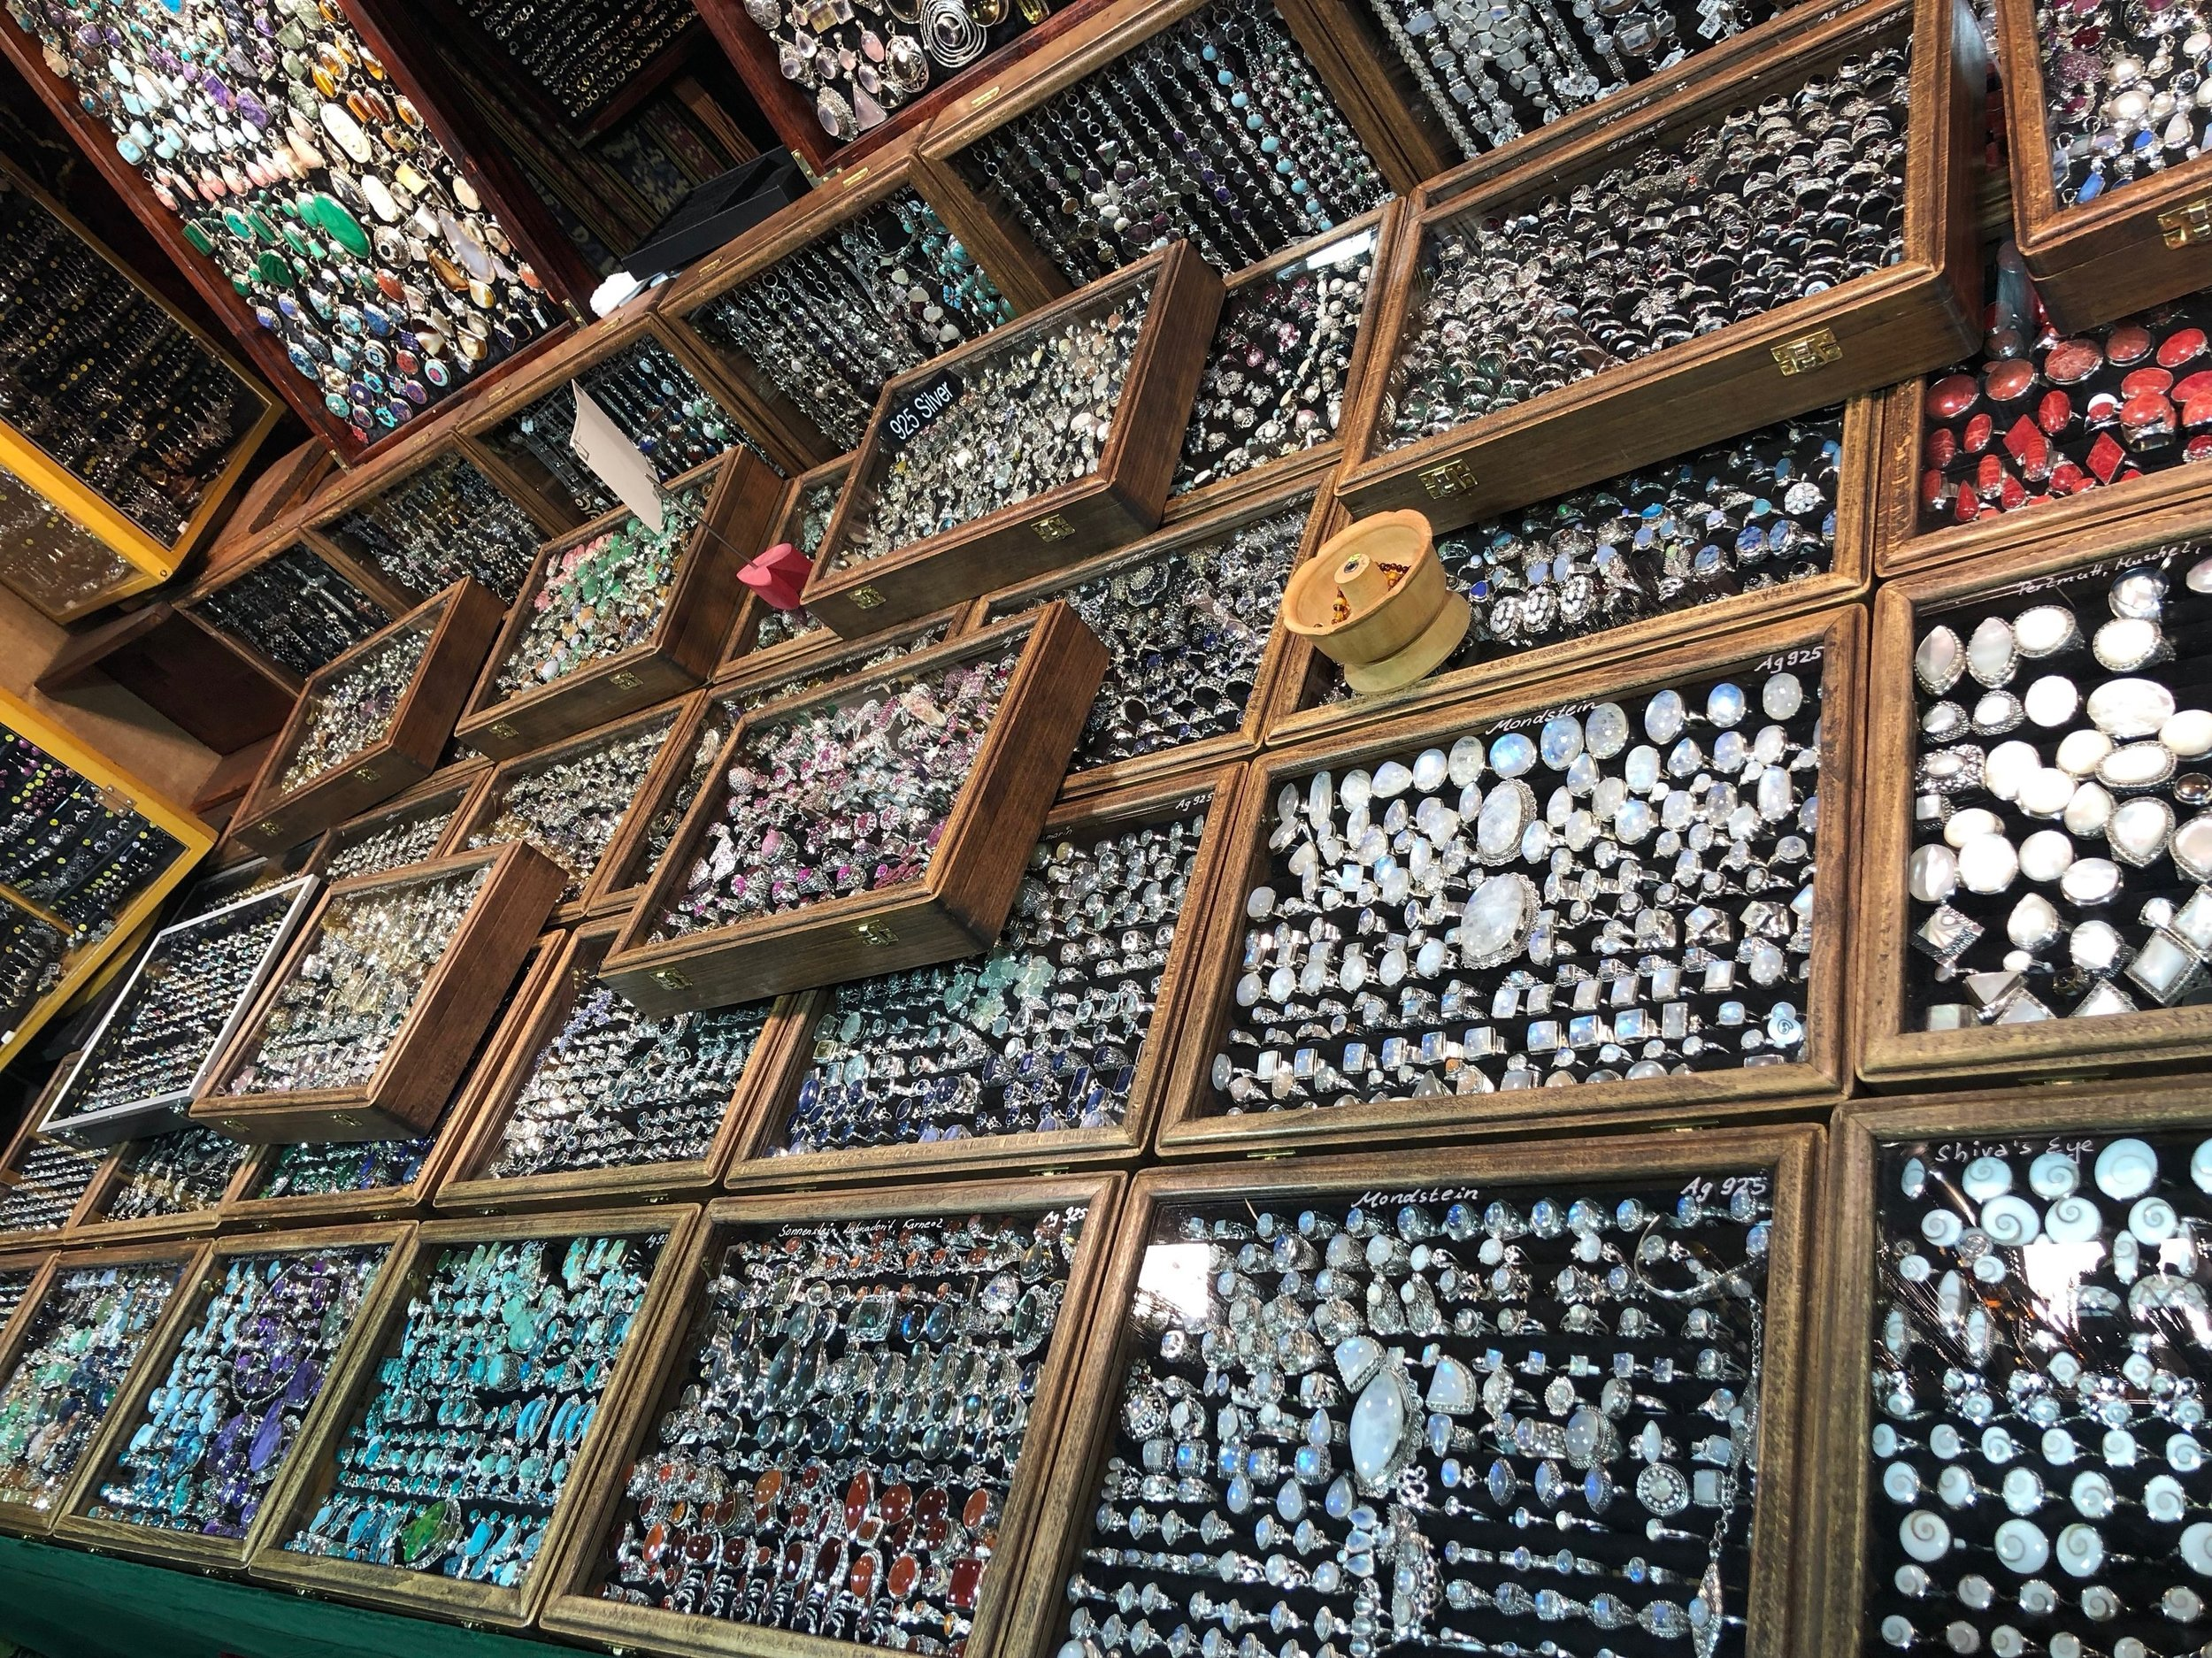 Hand-crafted jewelry, Dresden markets